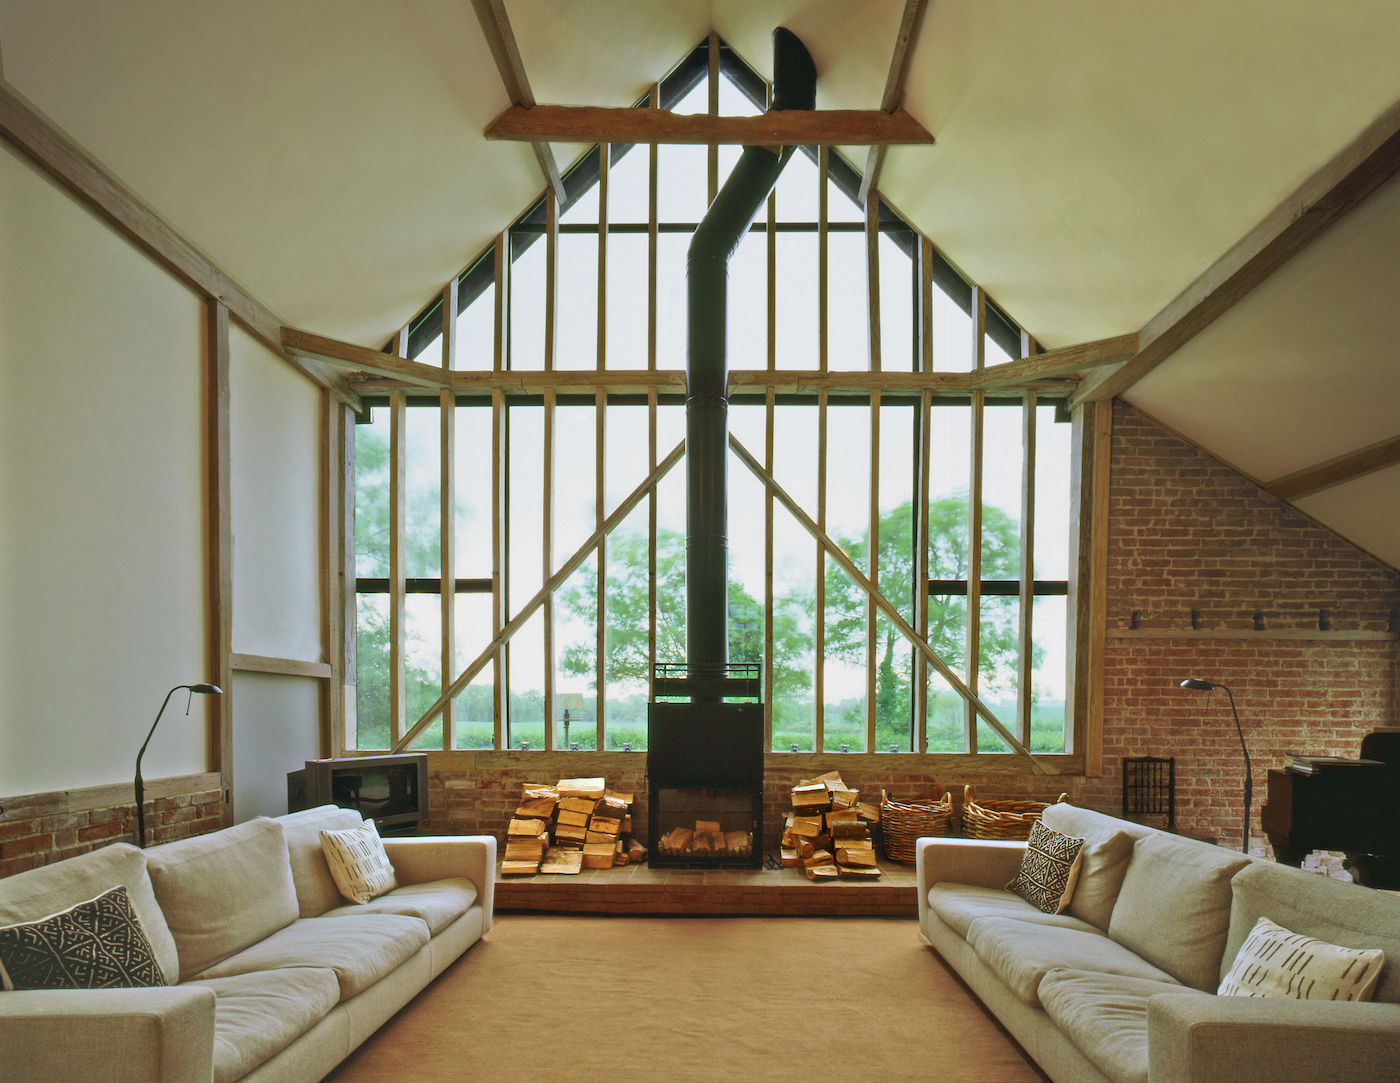 suffolk barn conversion interior nicholas jacob architects